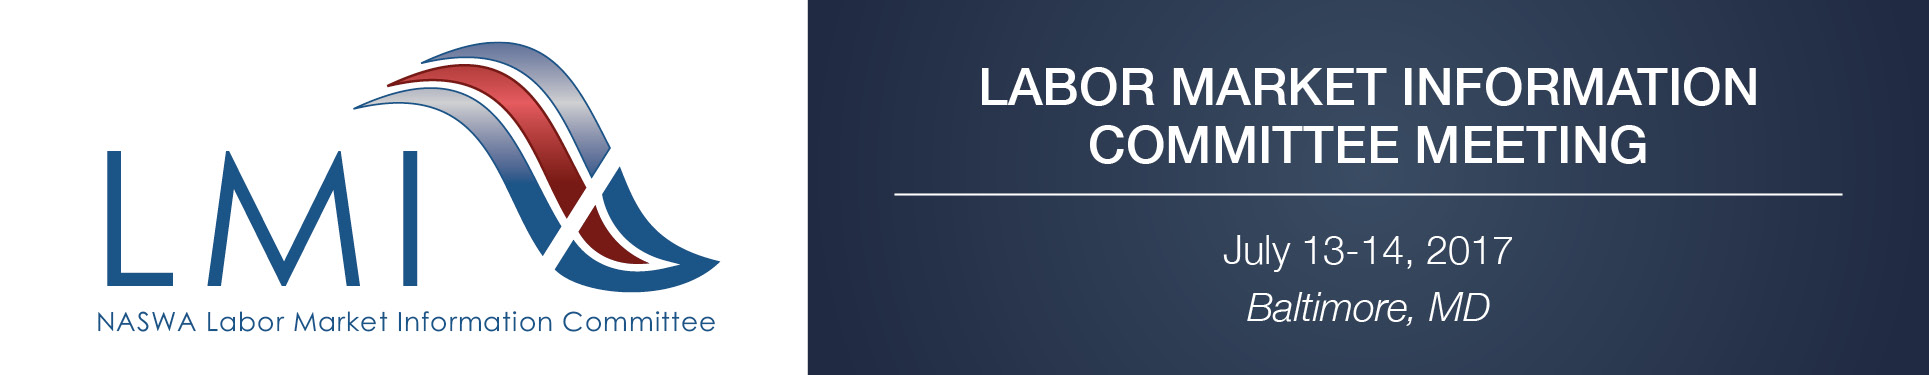 Labor Market Information Committee Meeting (July 2017)